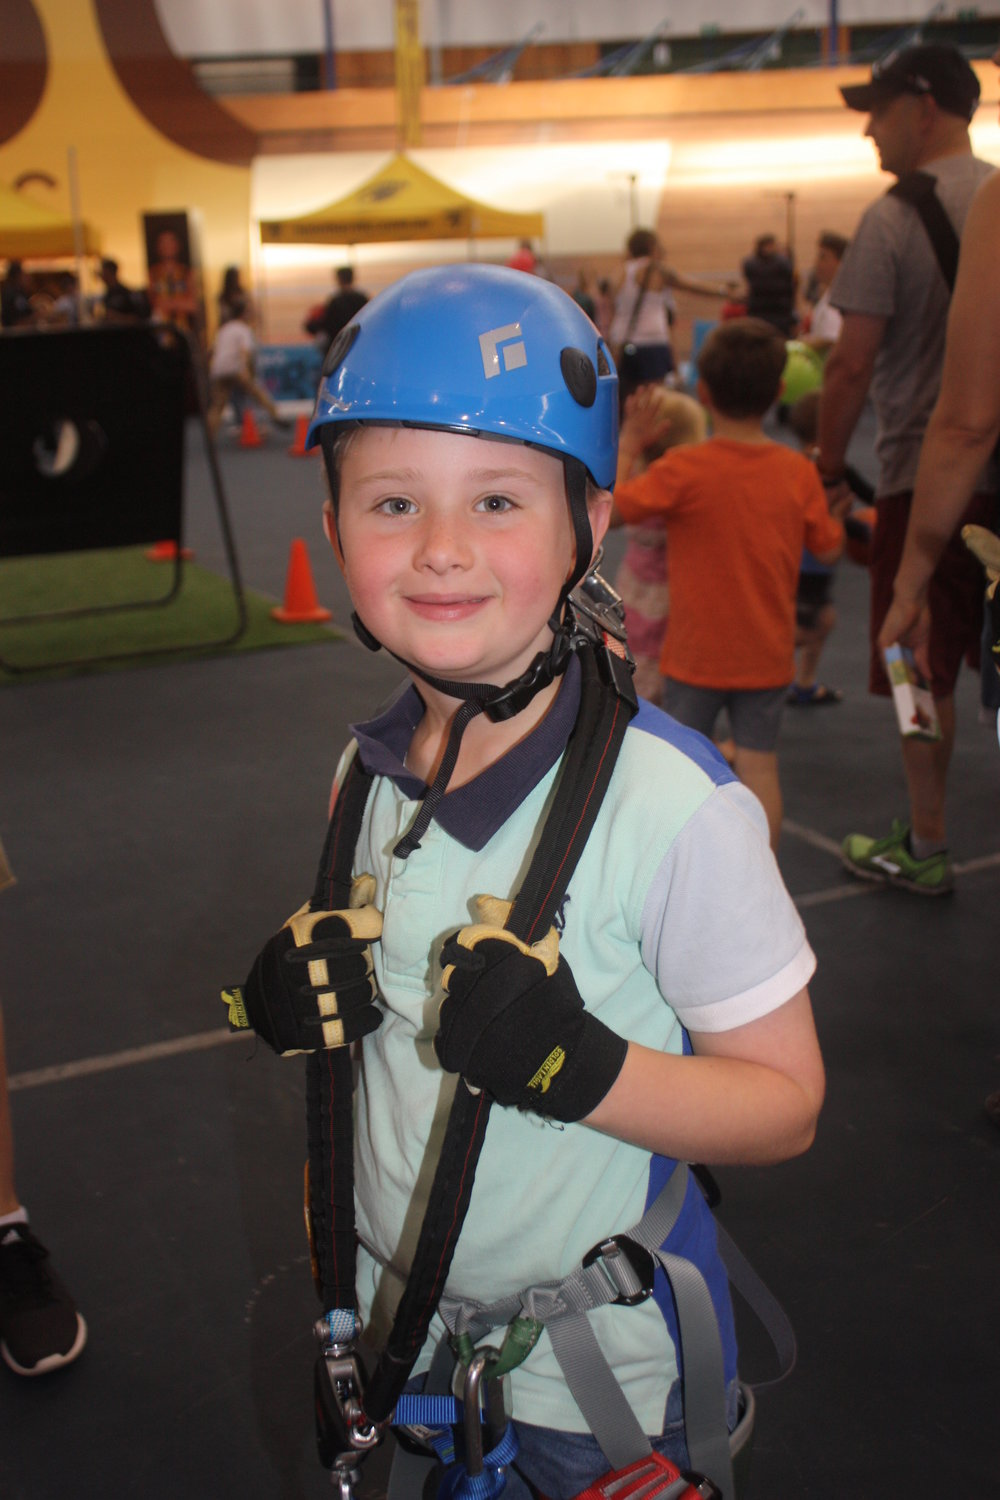 Cameron kitted up for the zipline